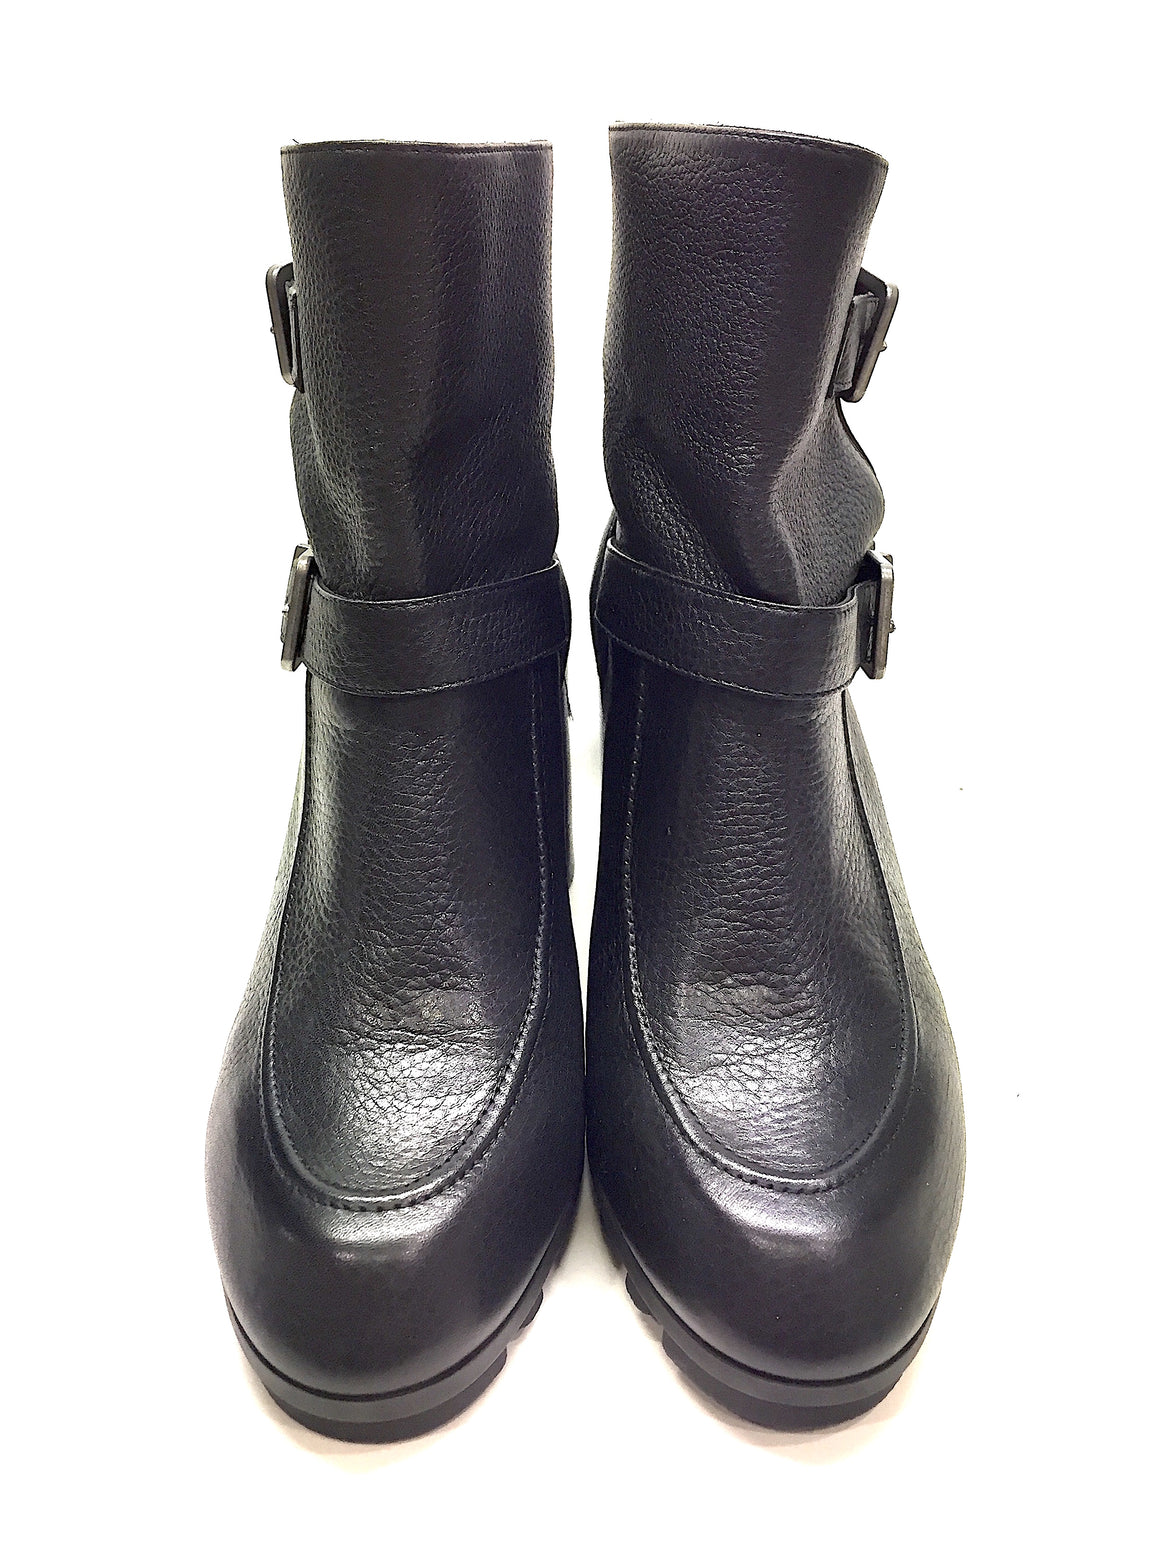 "New ROBERT CLERGERIE Black Leather 'APIN"" Heel Ankle Boots Booties Sz39.5"